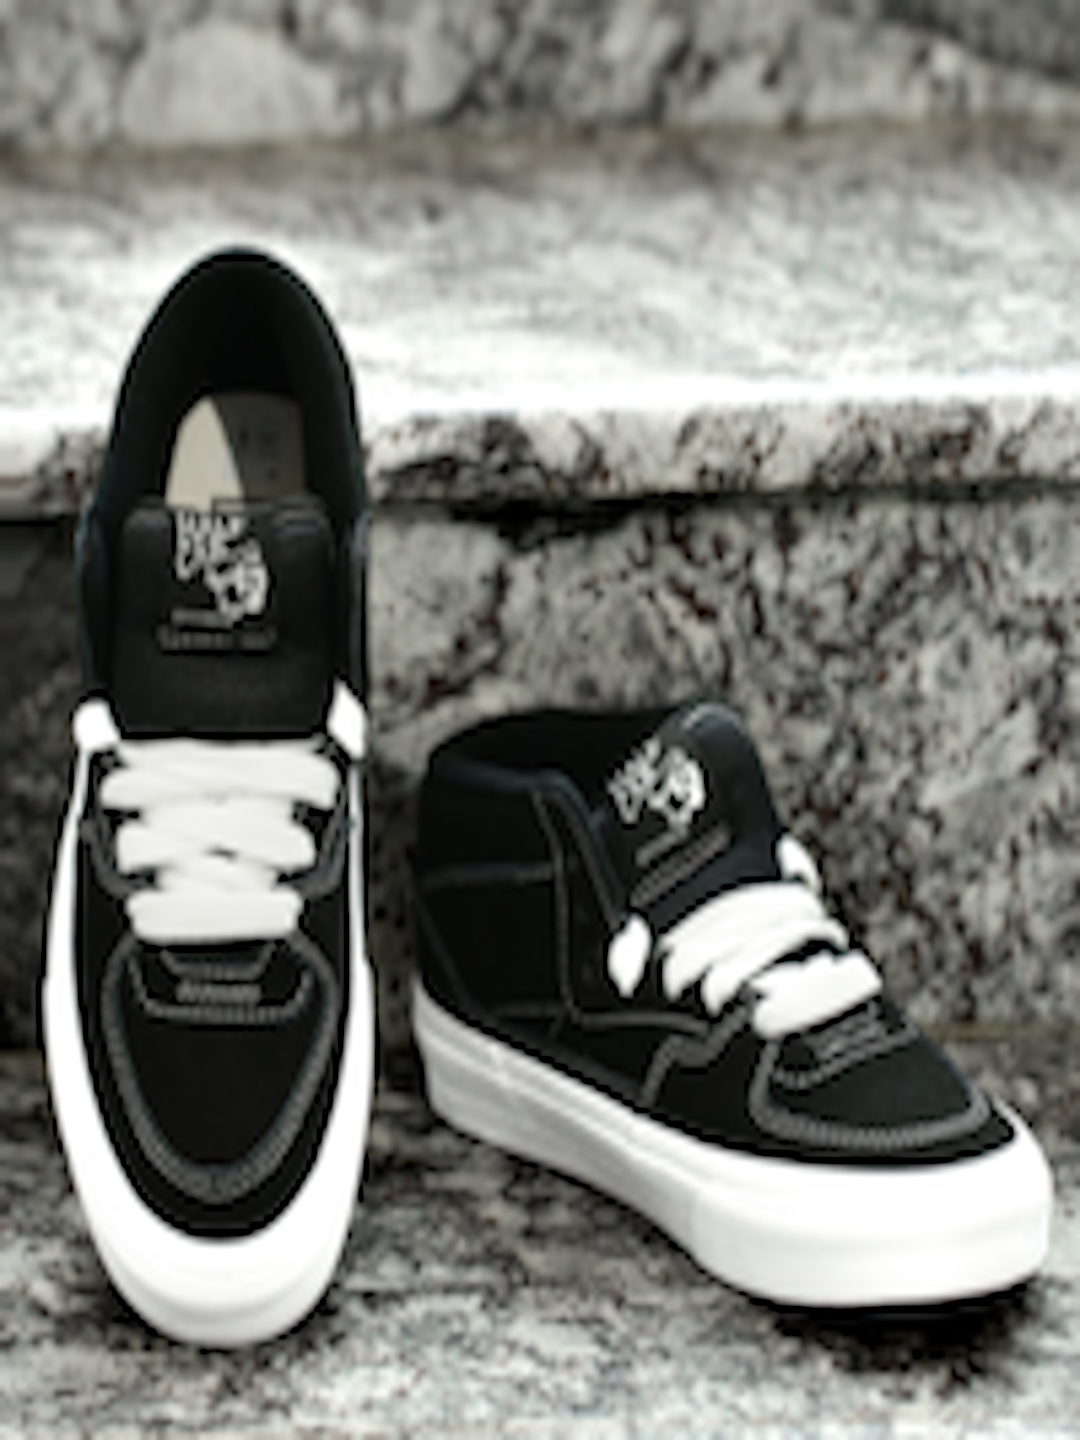 8f71033d56 vans cab 7 skate shoes - www.cytal.it